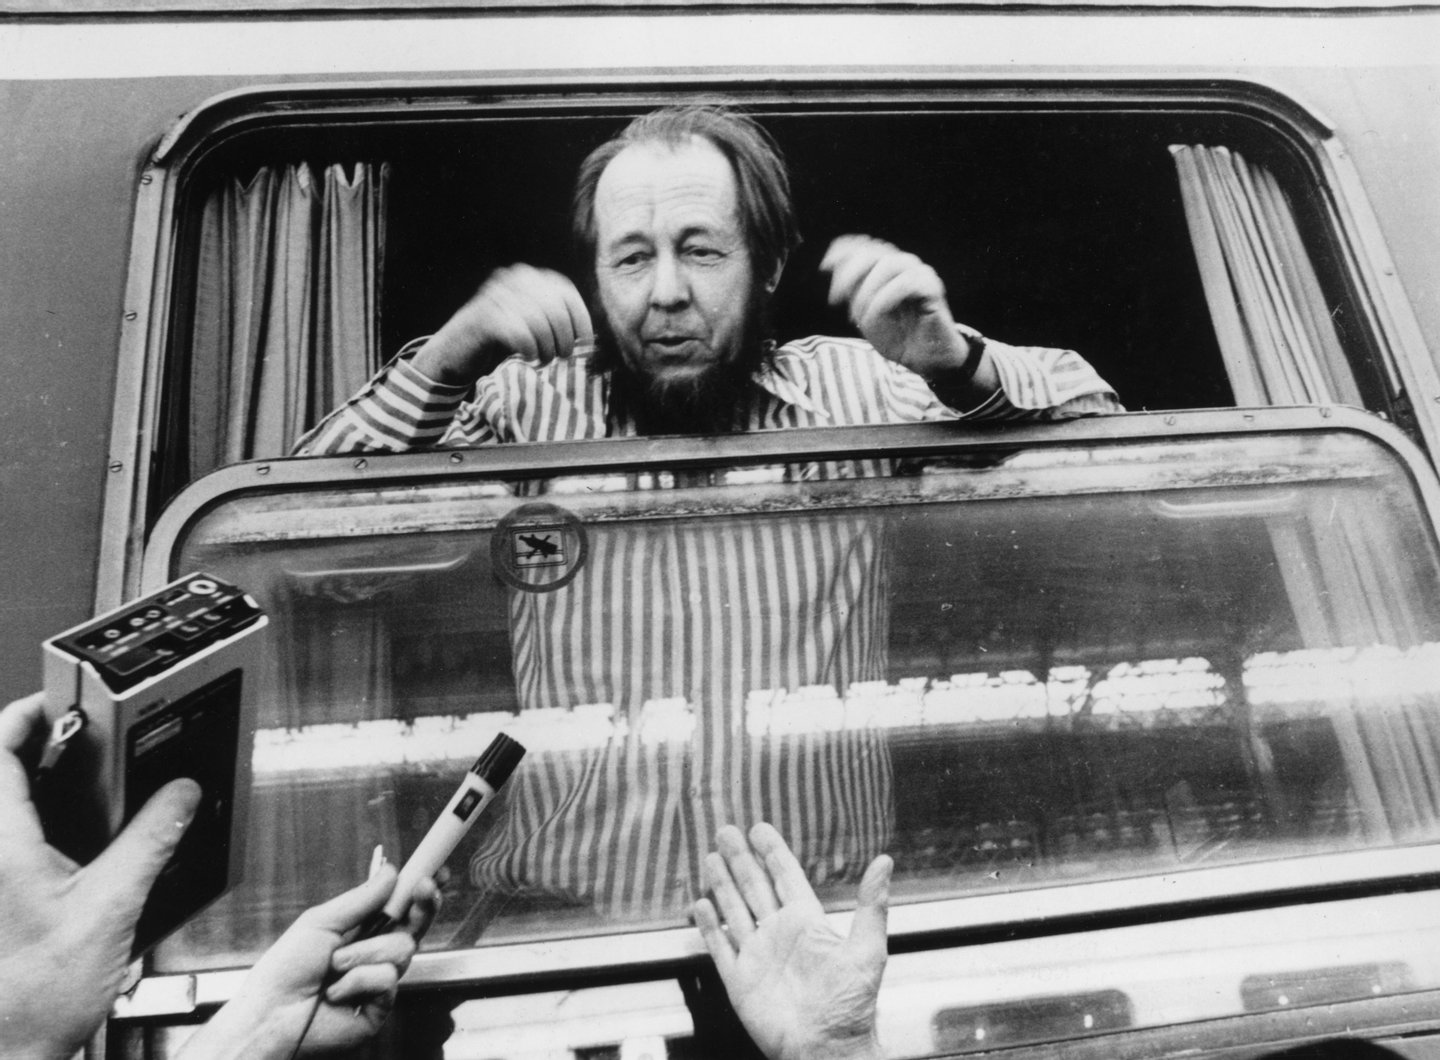 Russian writer and Nobel laureate Alexander Solzhenitsyn is mobbed by journalists on his arrival in Zurich after being deprived of his Soviet citizenship following the publication of 'The Gulag Archipelago'. (Photo by Keystone/Getty Images)